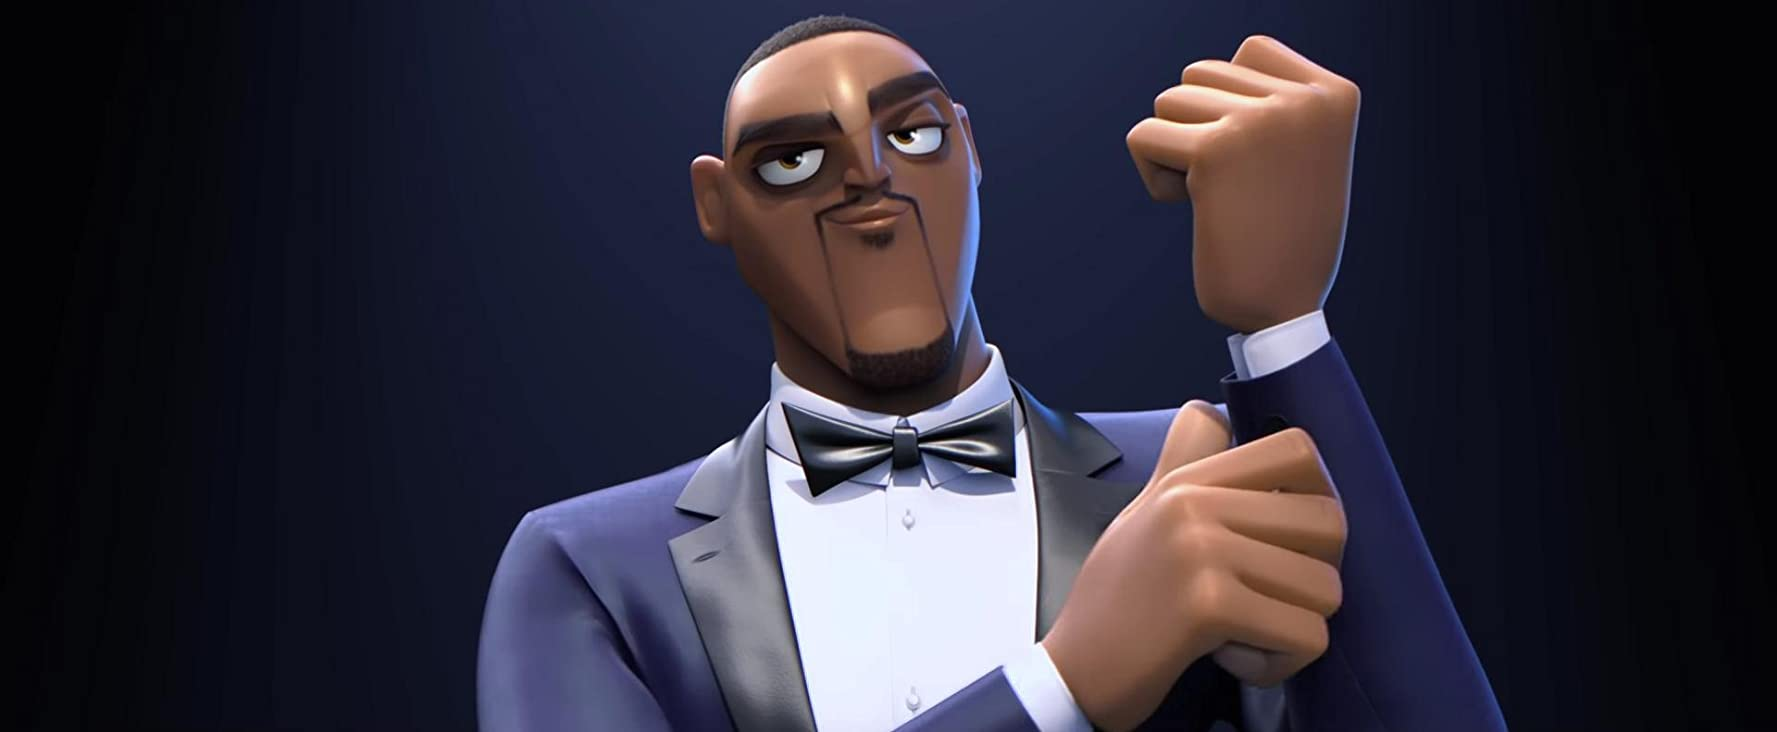 Spies In Disguise - grootste familie zomer blockbusters 2019